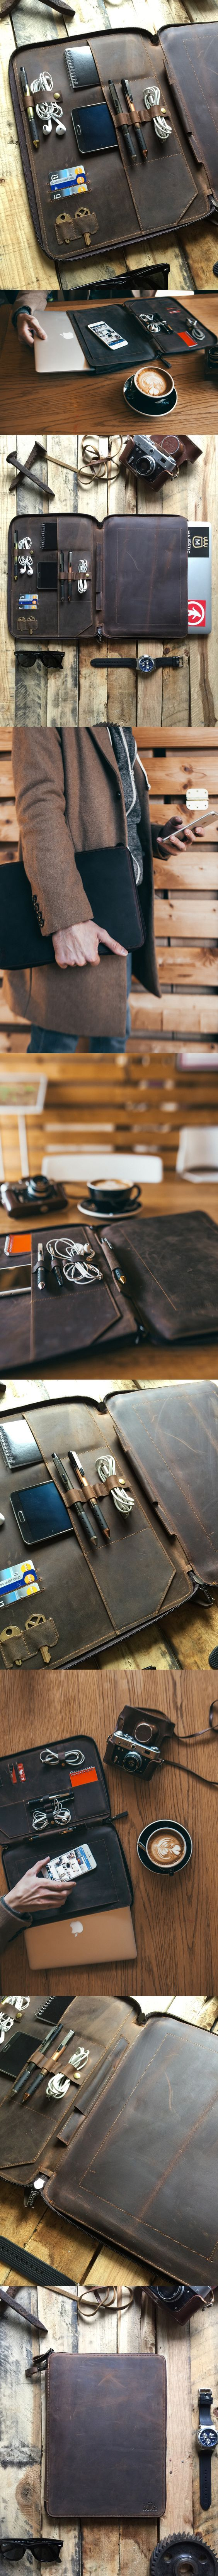 Perfect MacBook Organizer Portfolio.                                                                                                                                                                                 Más